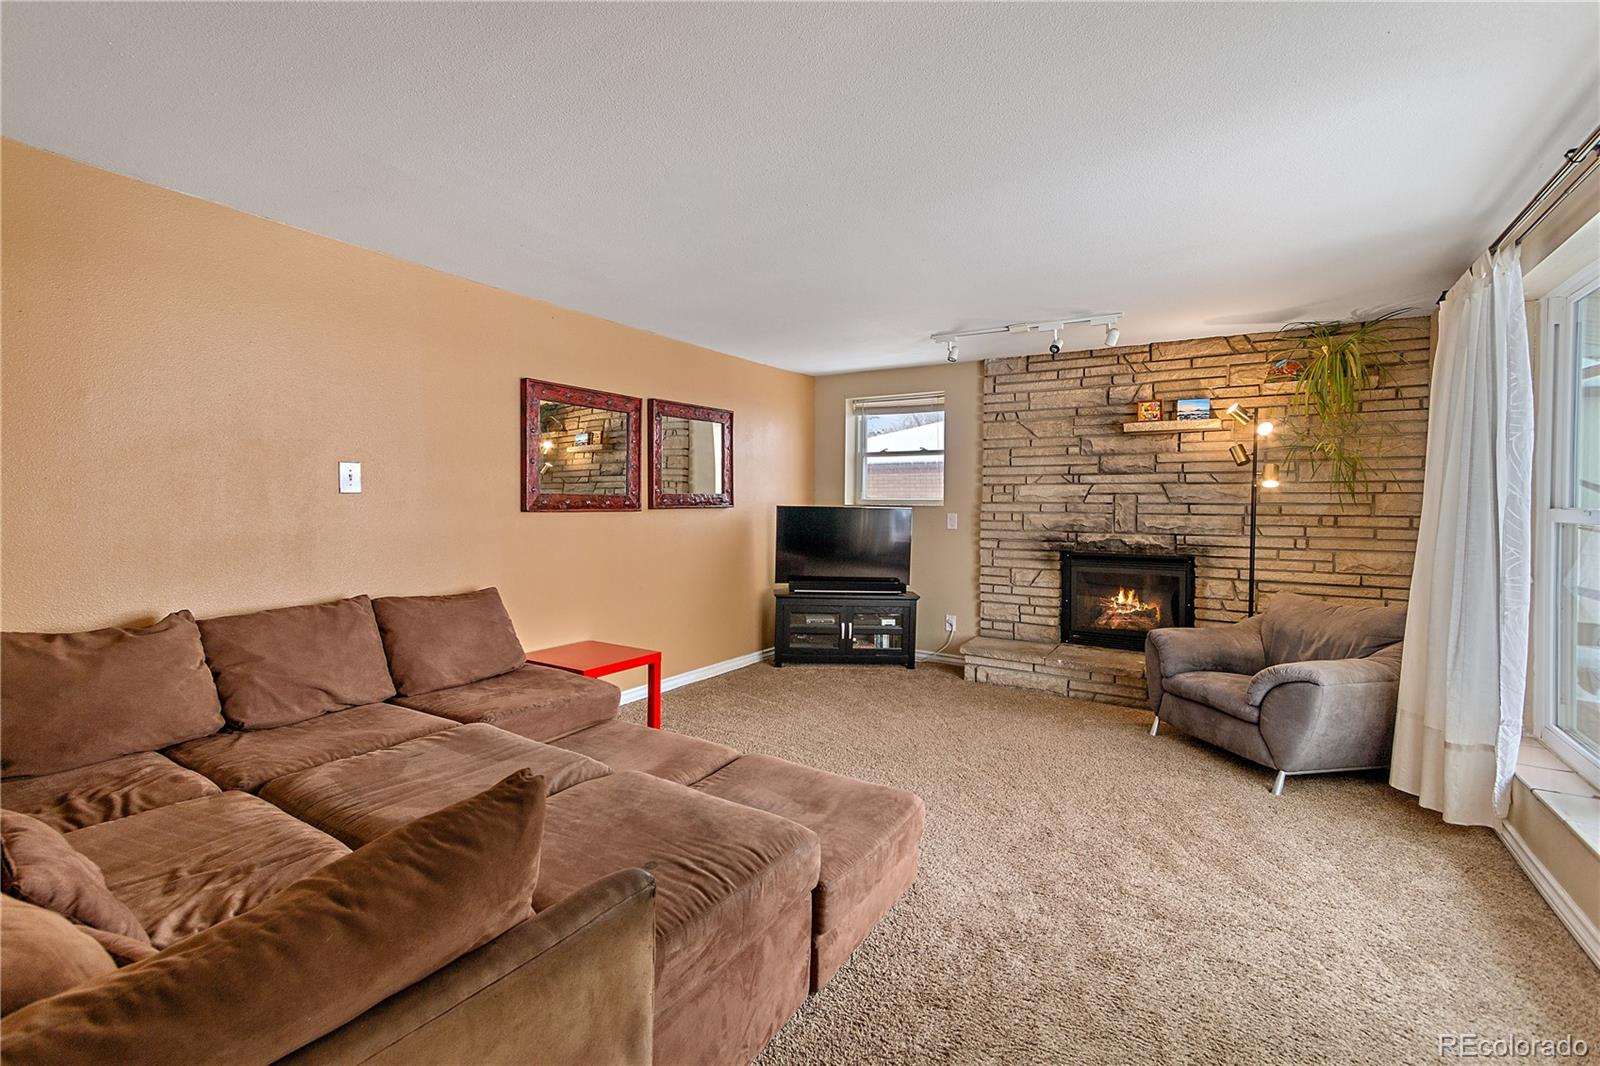 MLS# 5584211 - 10 - 8105 W 16th Place, Lakewood, CO 80214